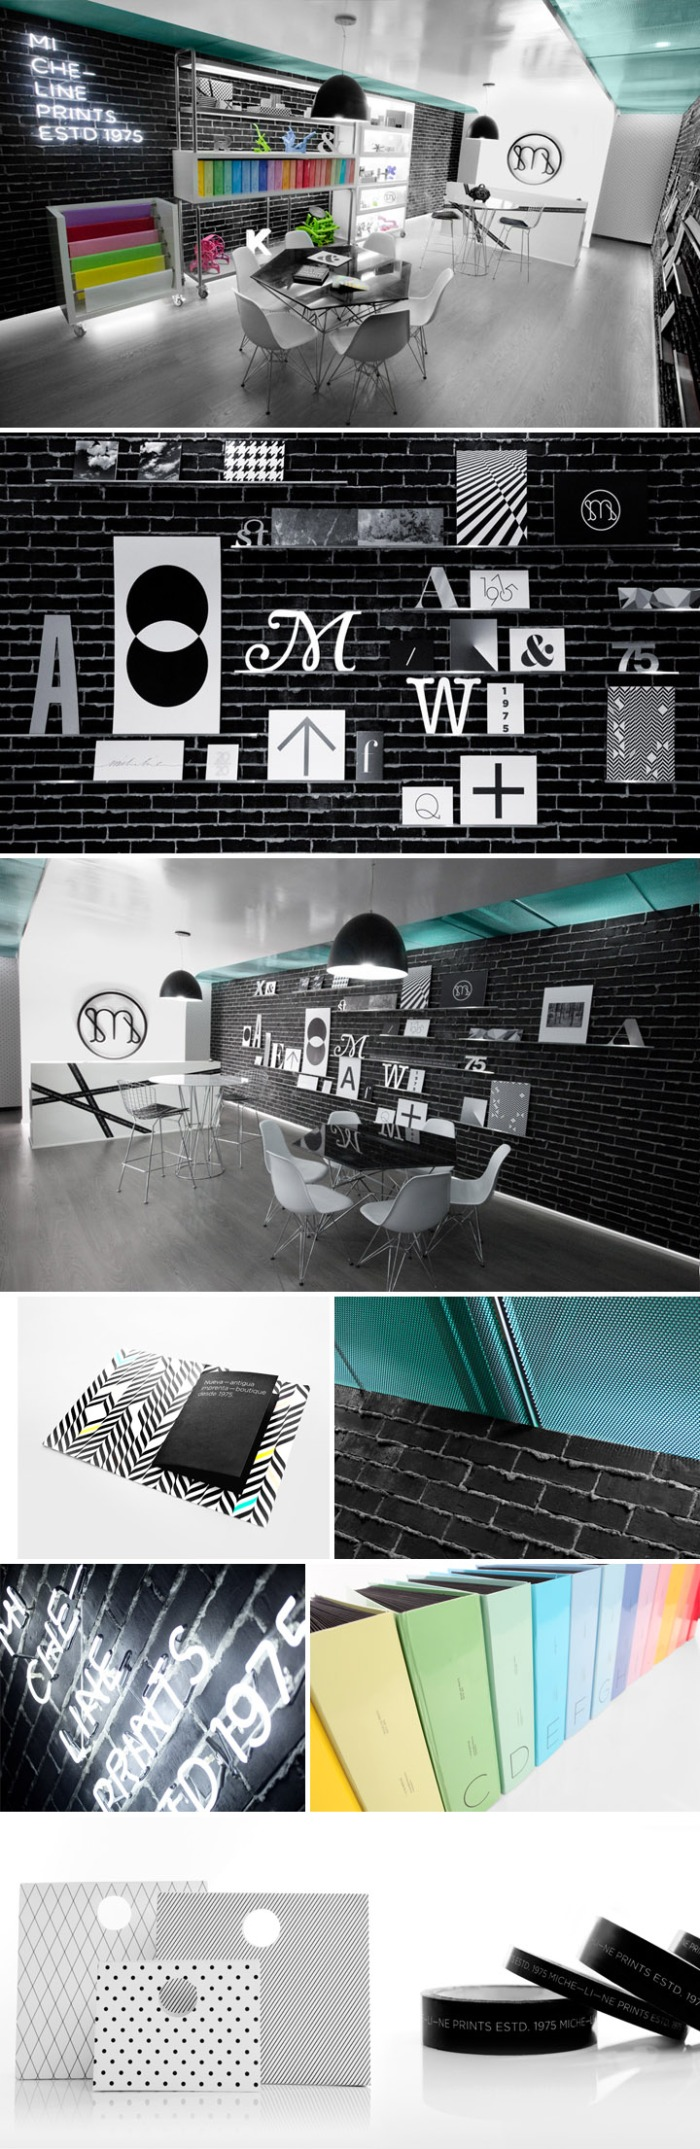 interior design, branding, print shop, Mexico, typography